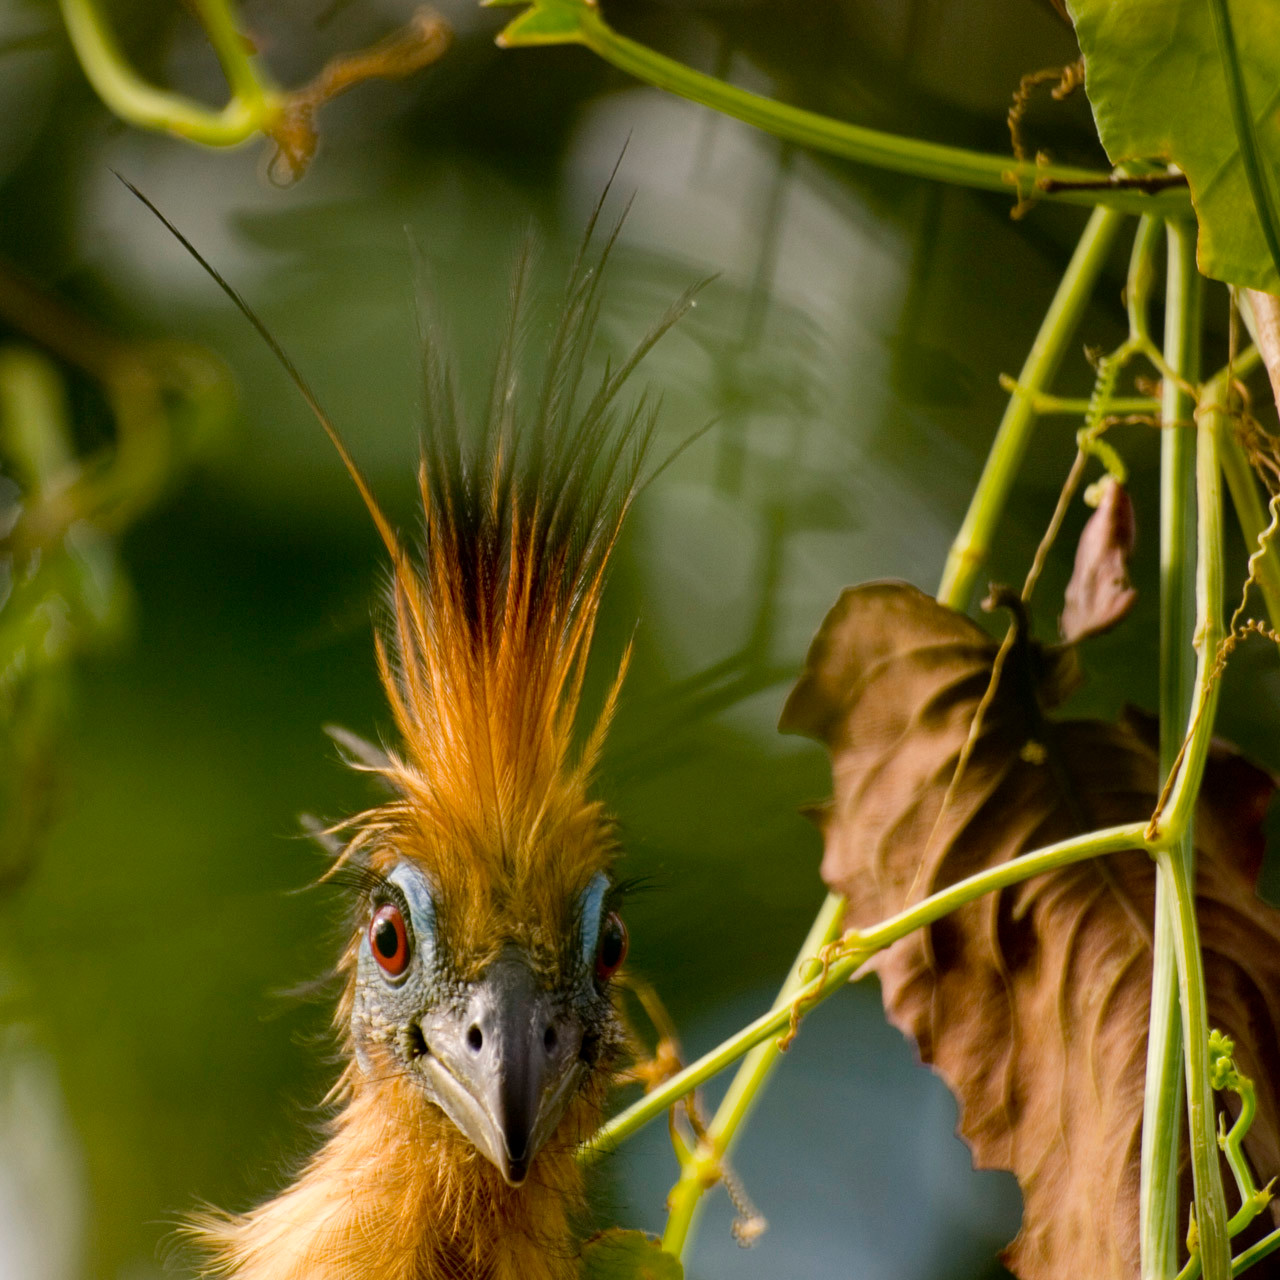 Hoatzin (Opisthocomus hoazin), also known as the Stinkbird [Venezuela, 2009]